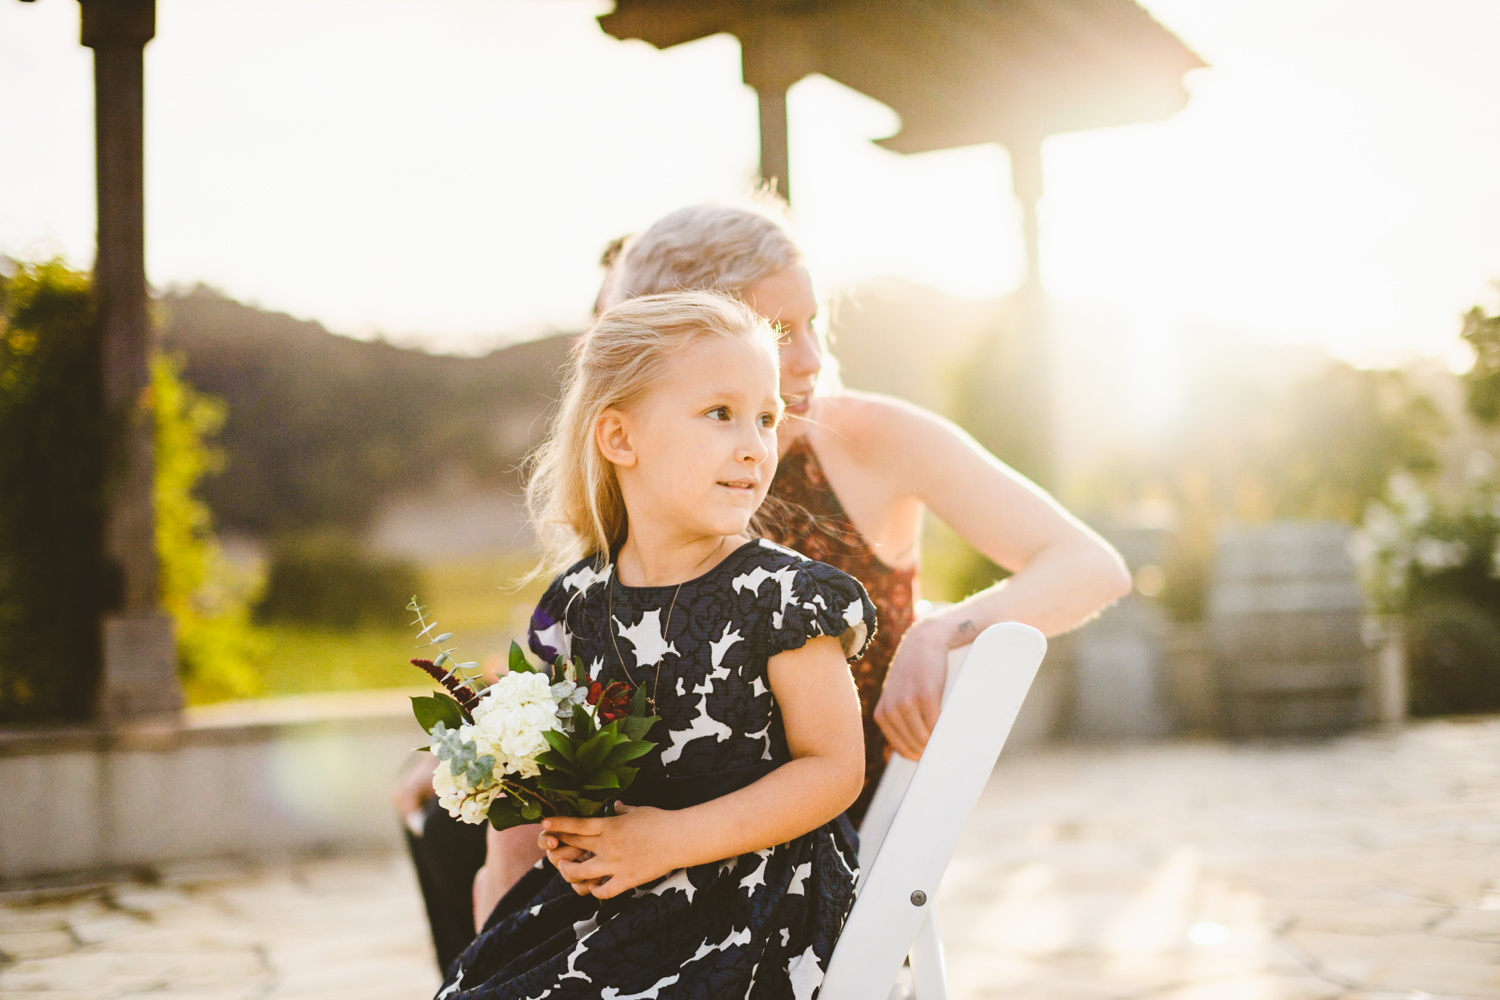 014 - daughter of the bride watches as bride walks down the aisle.jpg